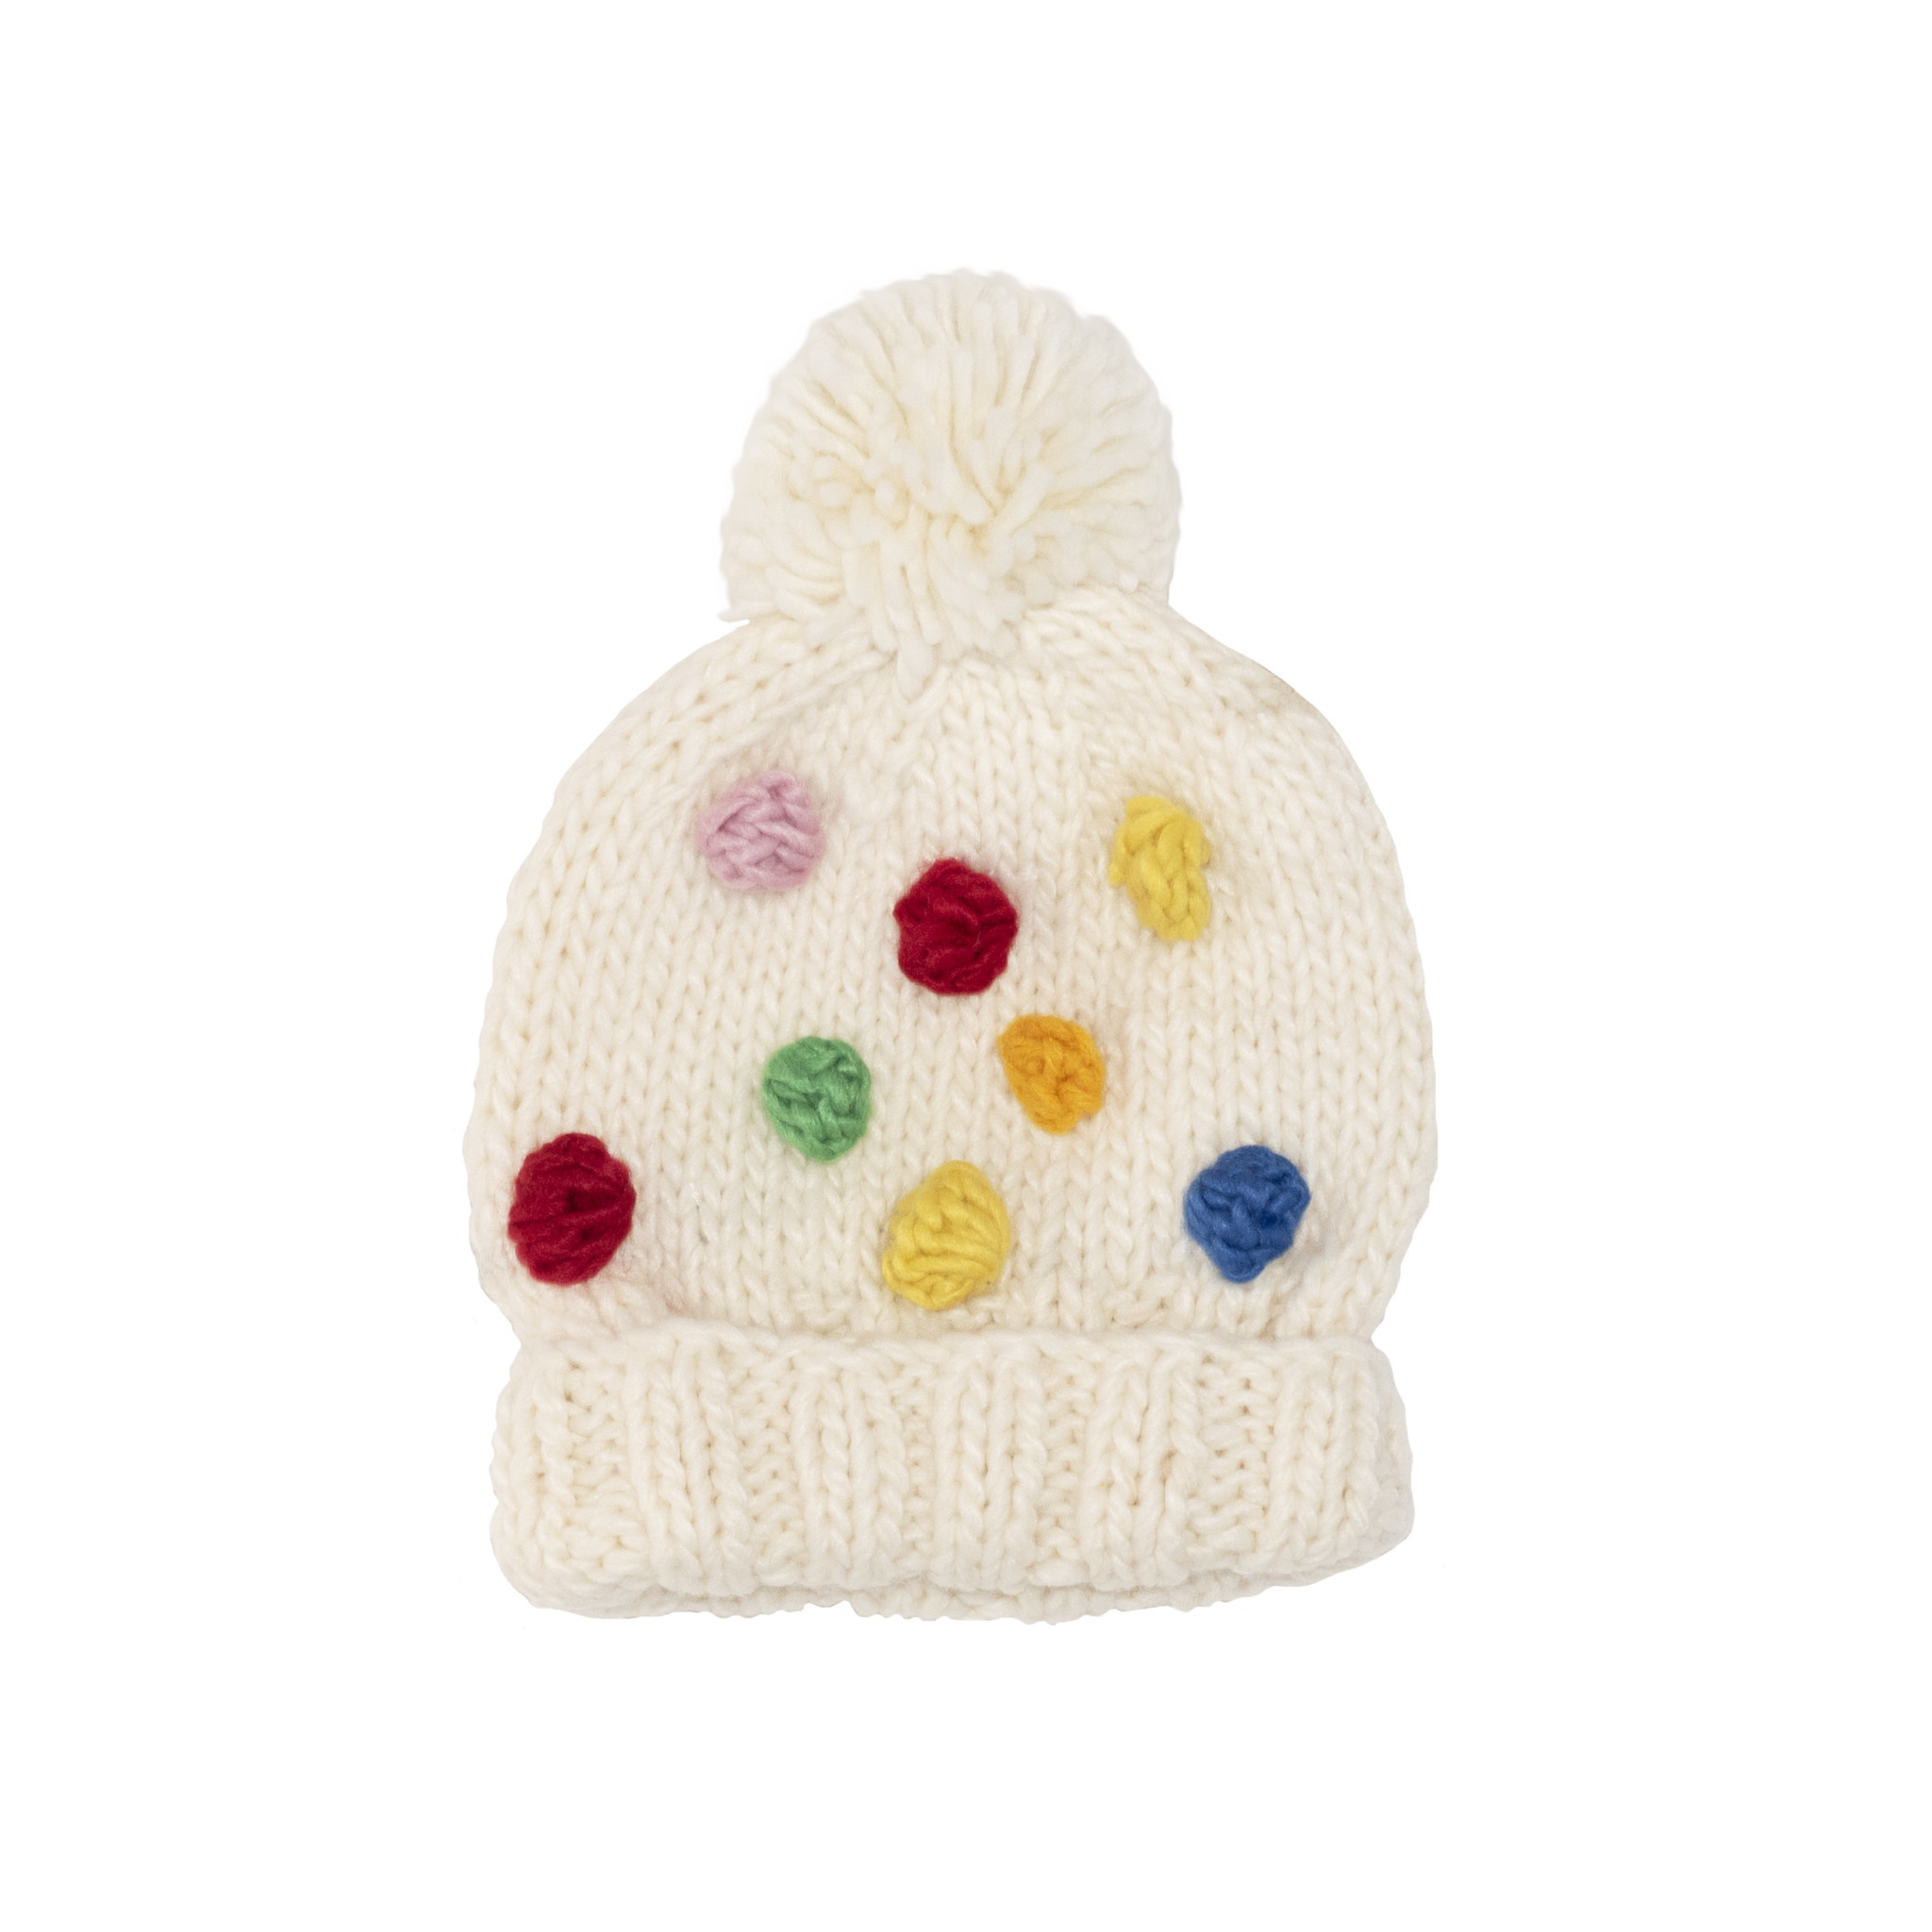 The Blueberry Hill Percy Beanie